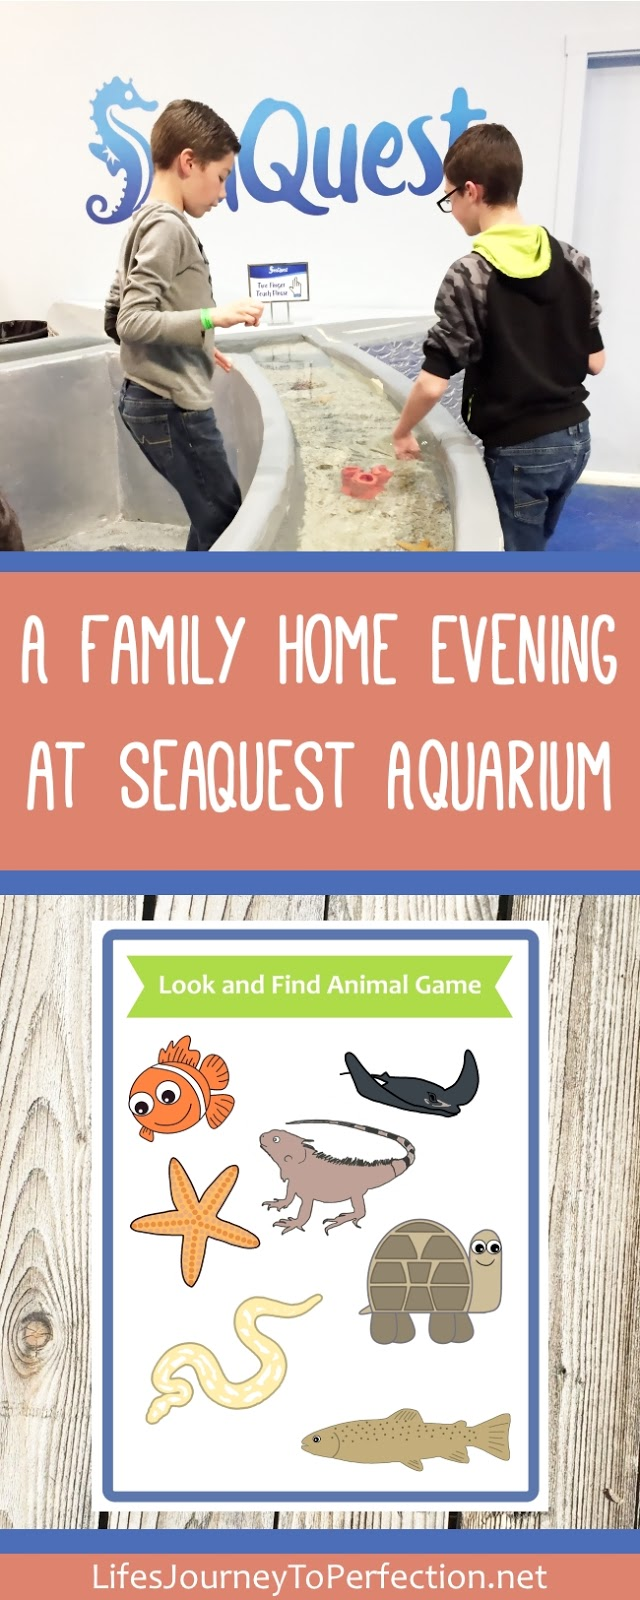 If You D Like More Fun Family Fun Ideas Follow Us On Facebook And Instagram You Can Also Check Out More Family Home Evening Ideas Here